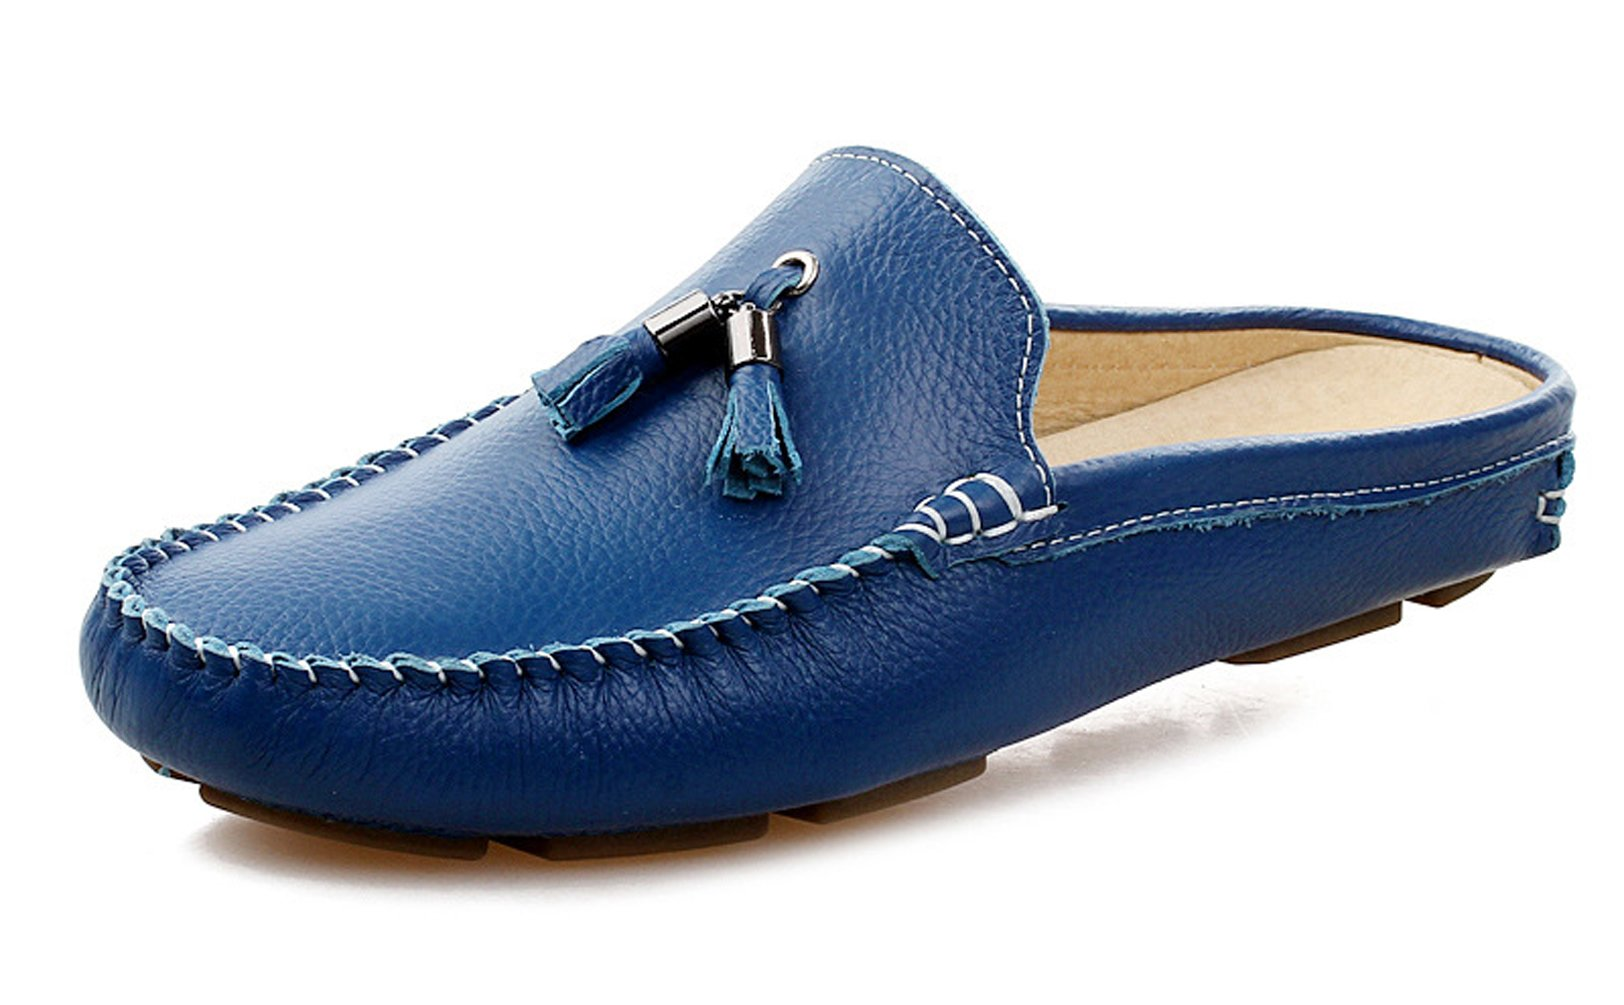 Santimon Men's Slippers Mules Clogs Tassel Leather Comfortable Slip on Shoes Casual Loafters Blue 5.5 D(M) US